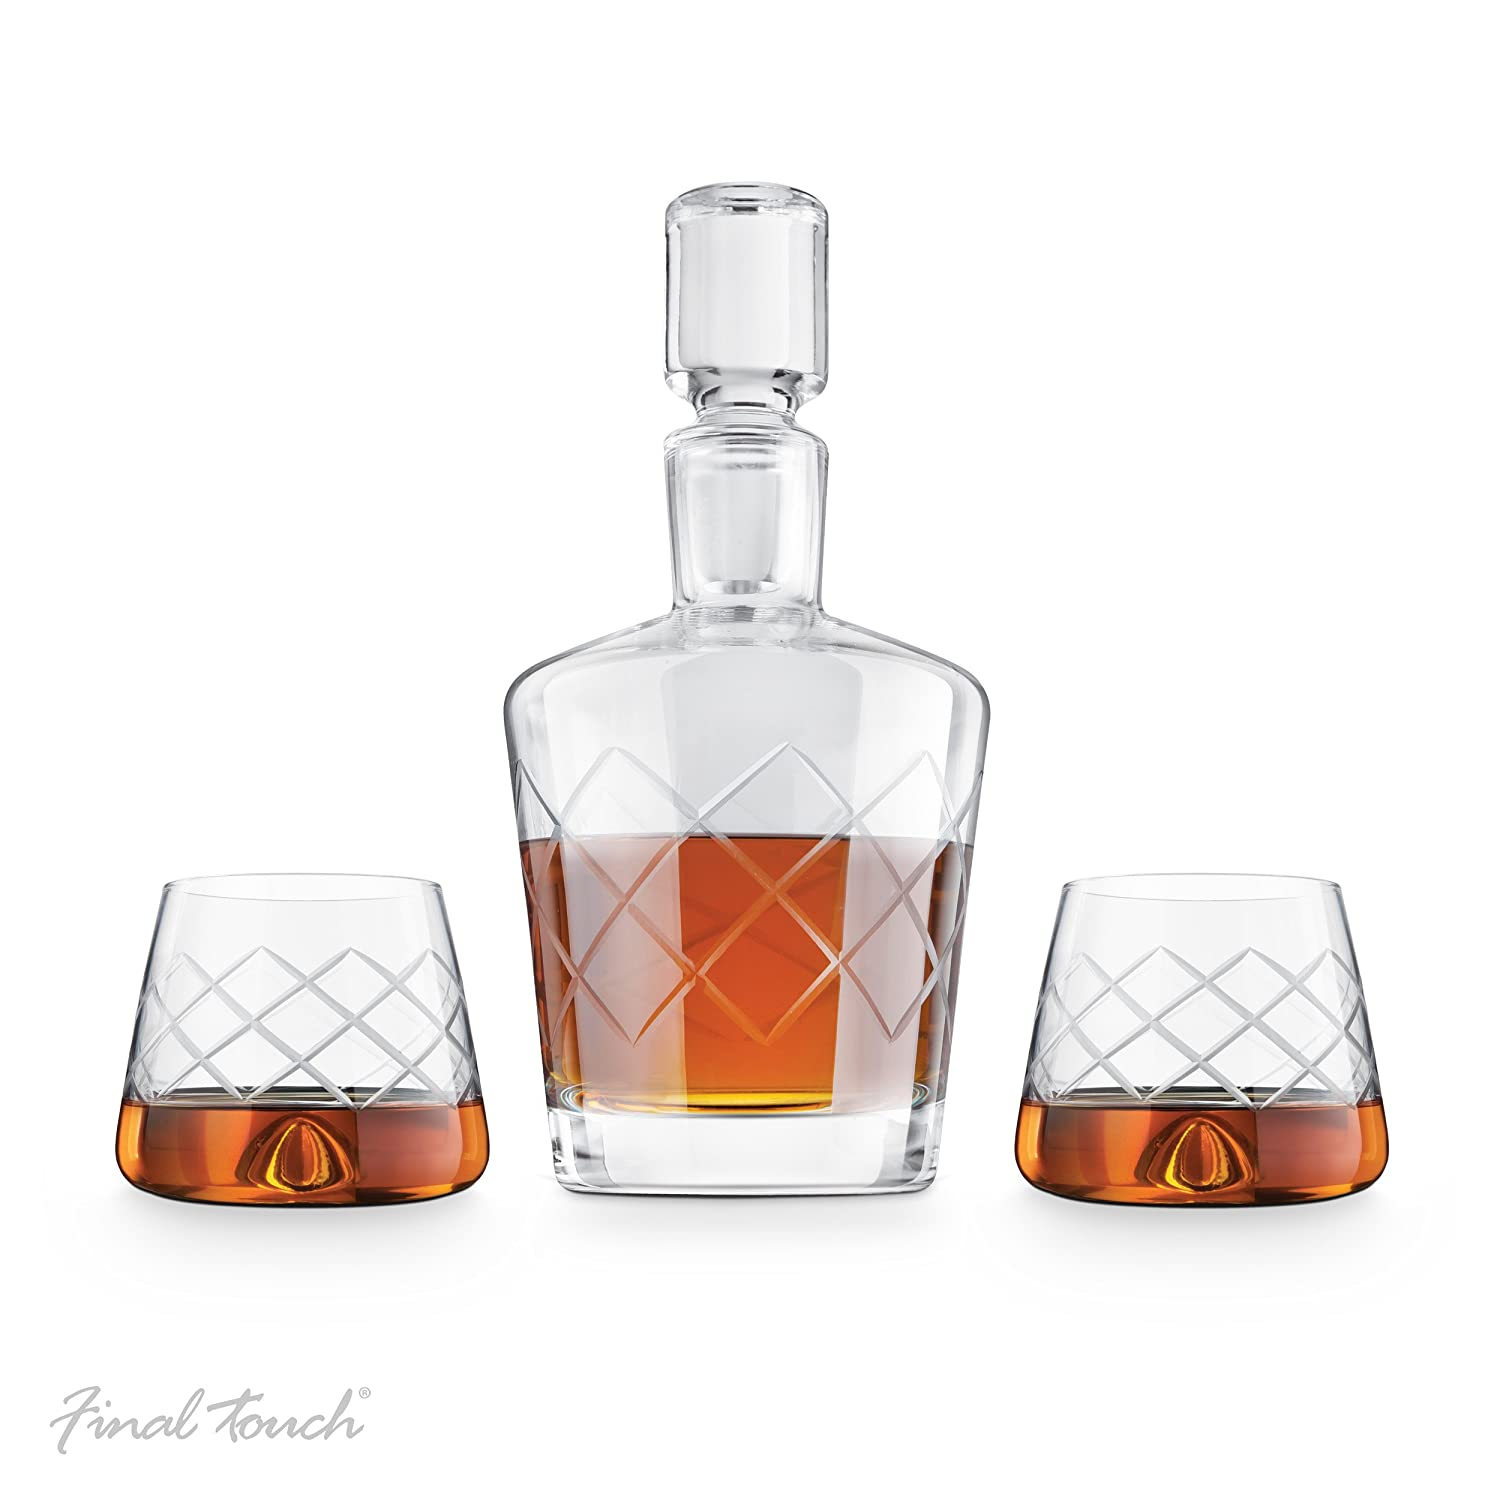 Final Touch Durashield Whisky Decanter Set